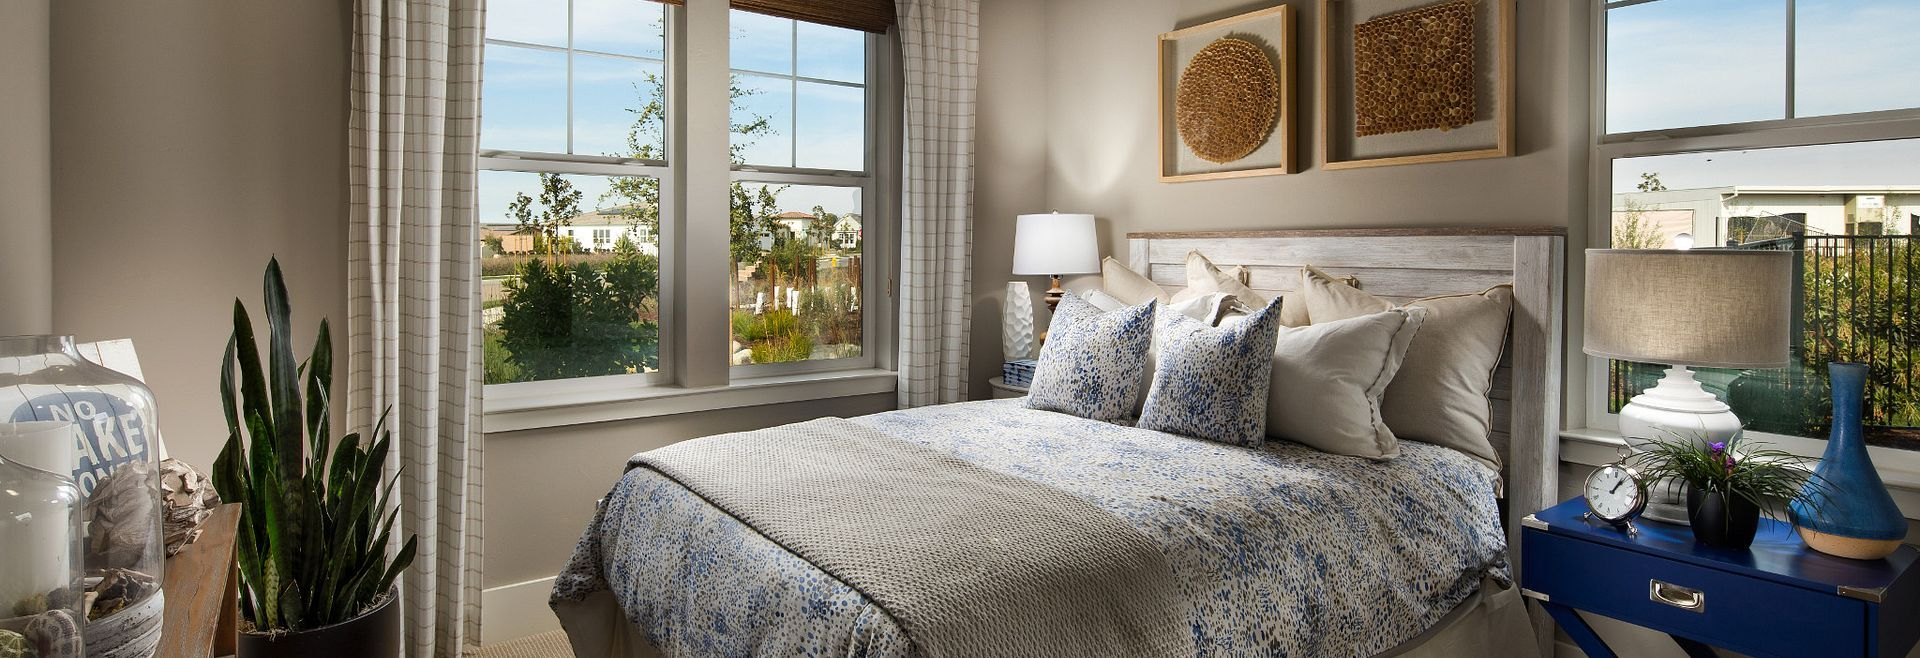 Bedroom featured in the Solvang By Shea Homes - Trilogy in San Luis Obispo, CA